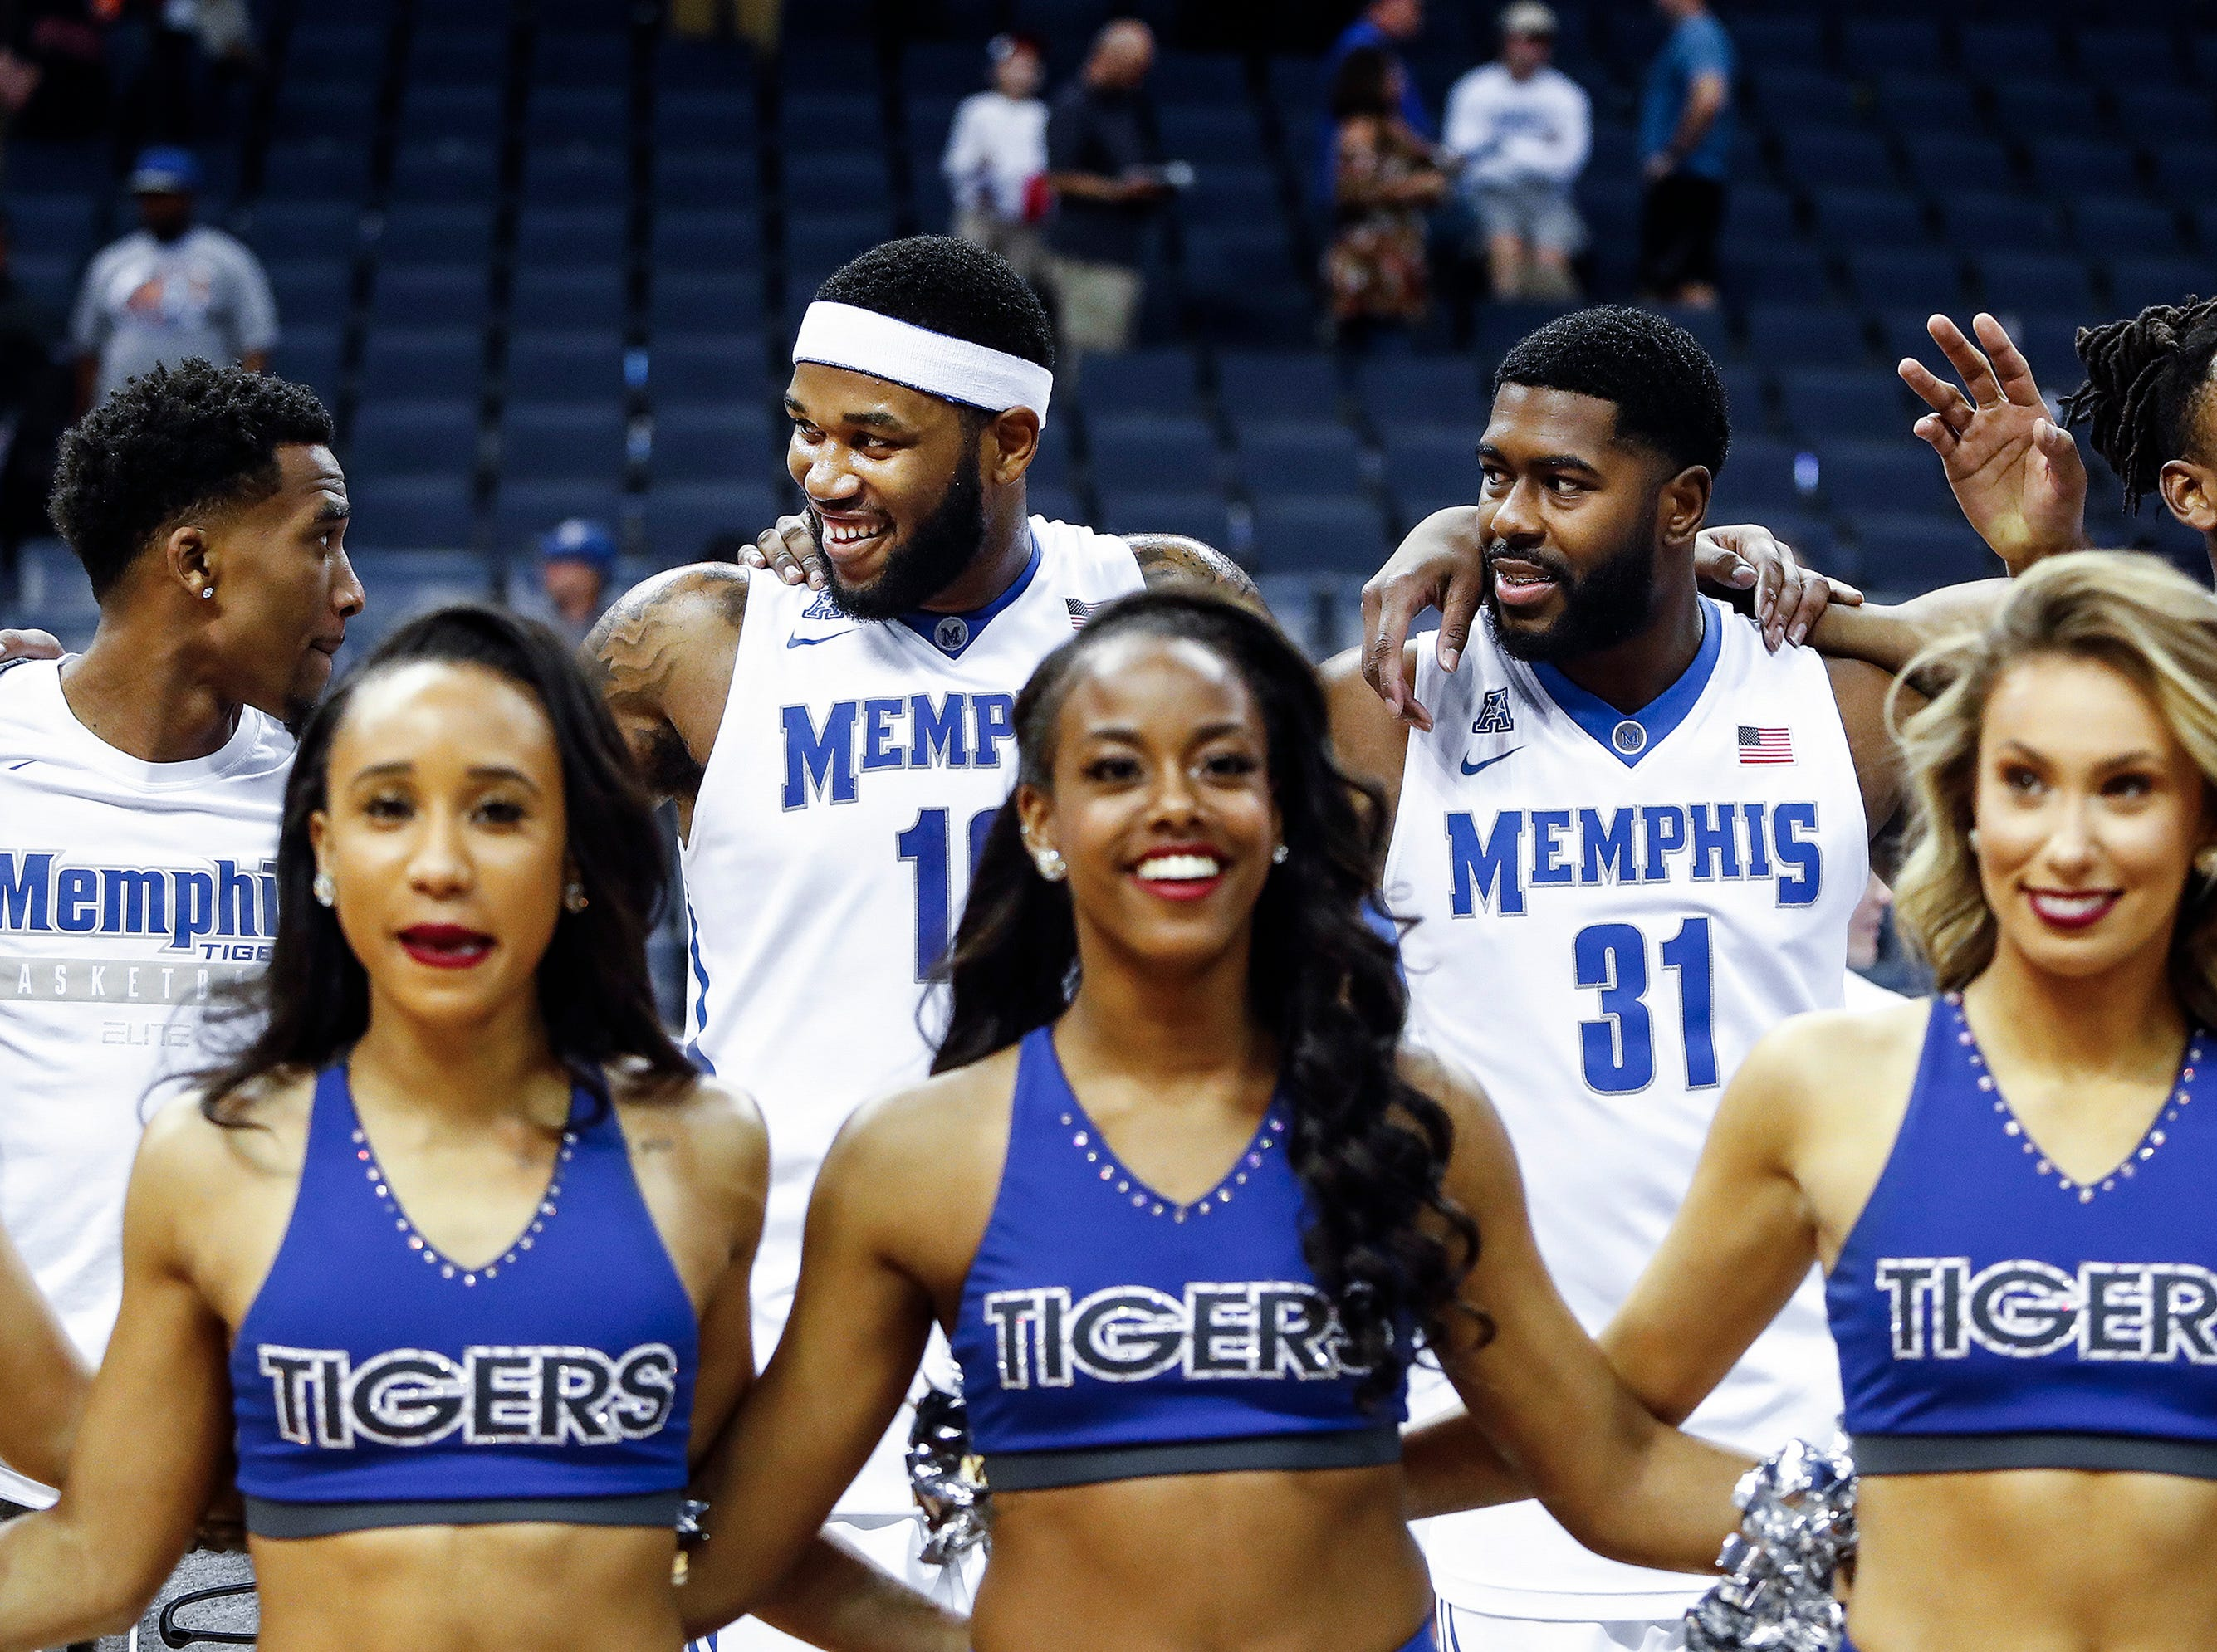 Memphis teammates (left to right) Jeremiah Martin, Mike Parks Jr., Jesse Johnson, and Kyvon Davenport celebrate a 90-70 victory over ECU at the FedExForum in Memphis Tenn., Sunday, March 4, 2018.